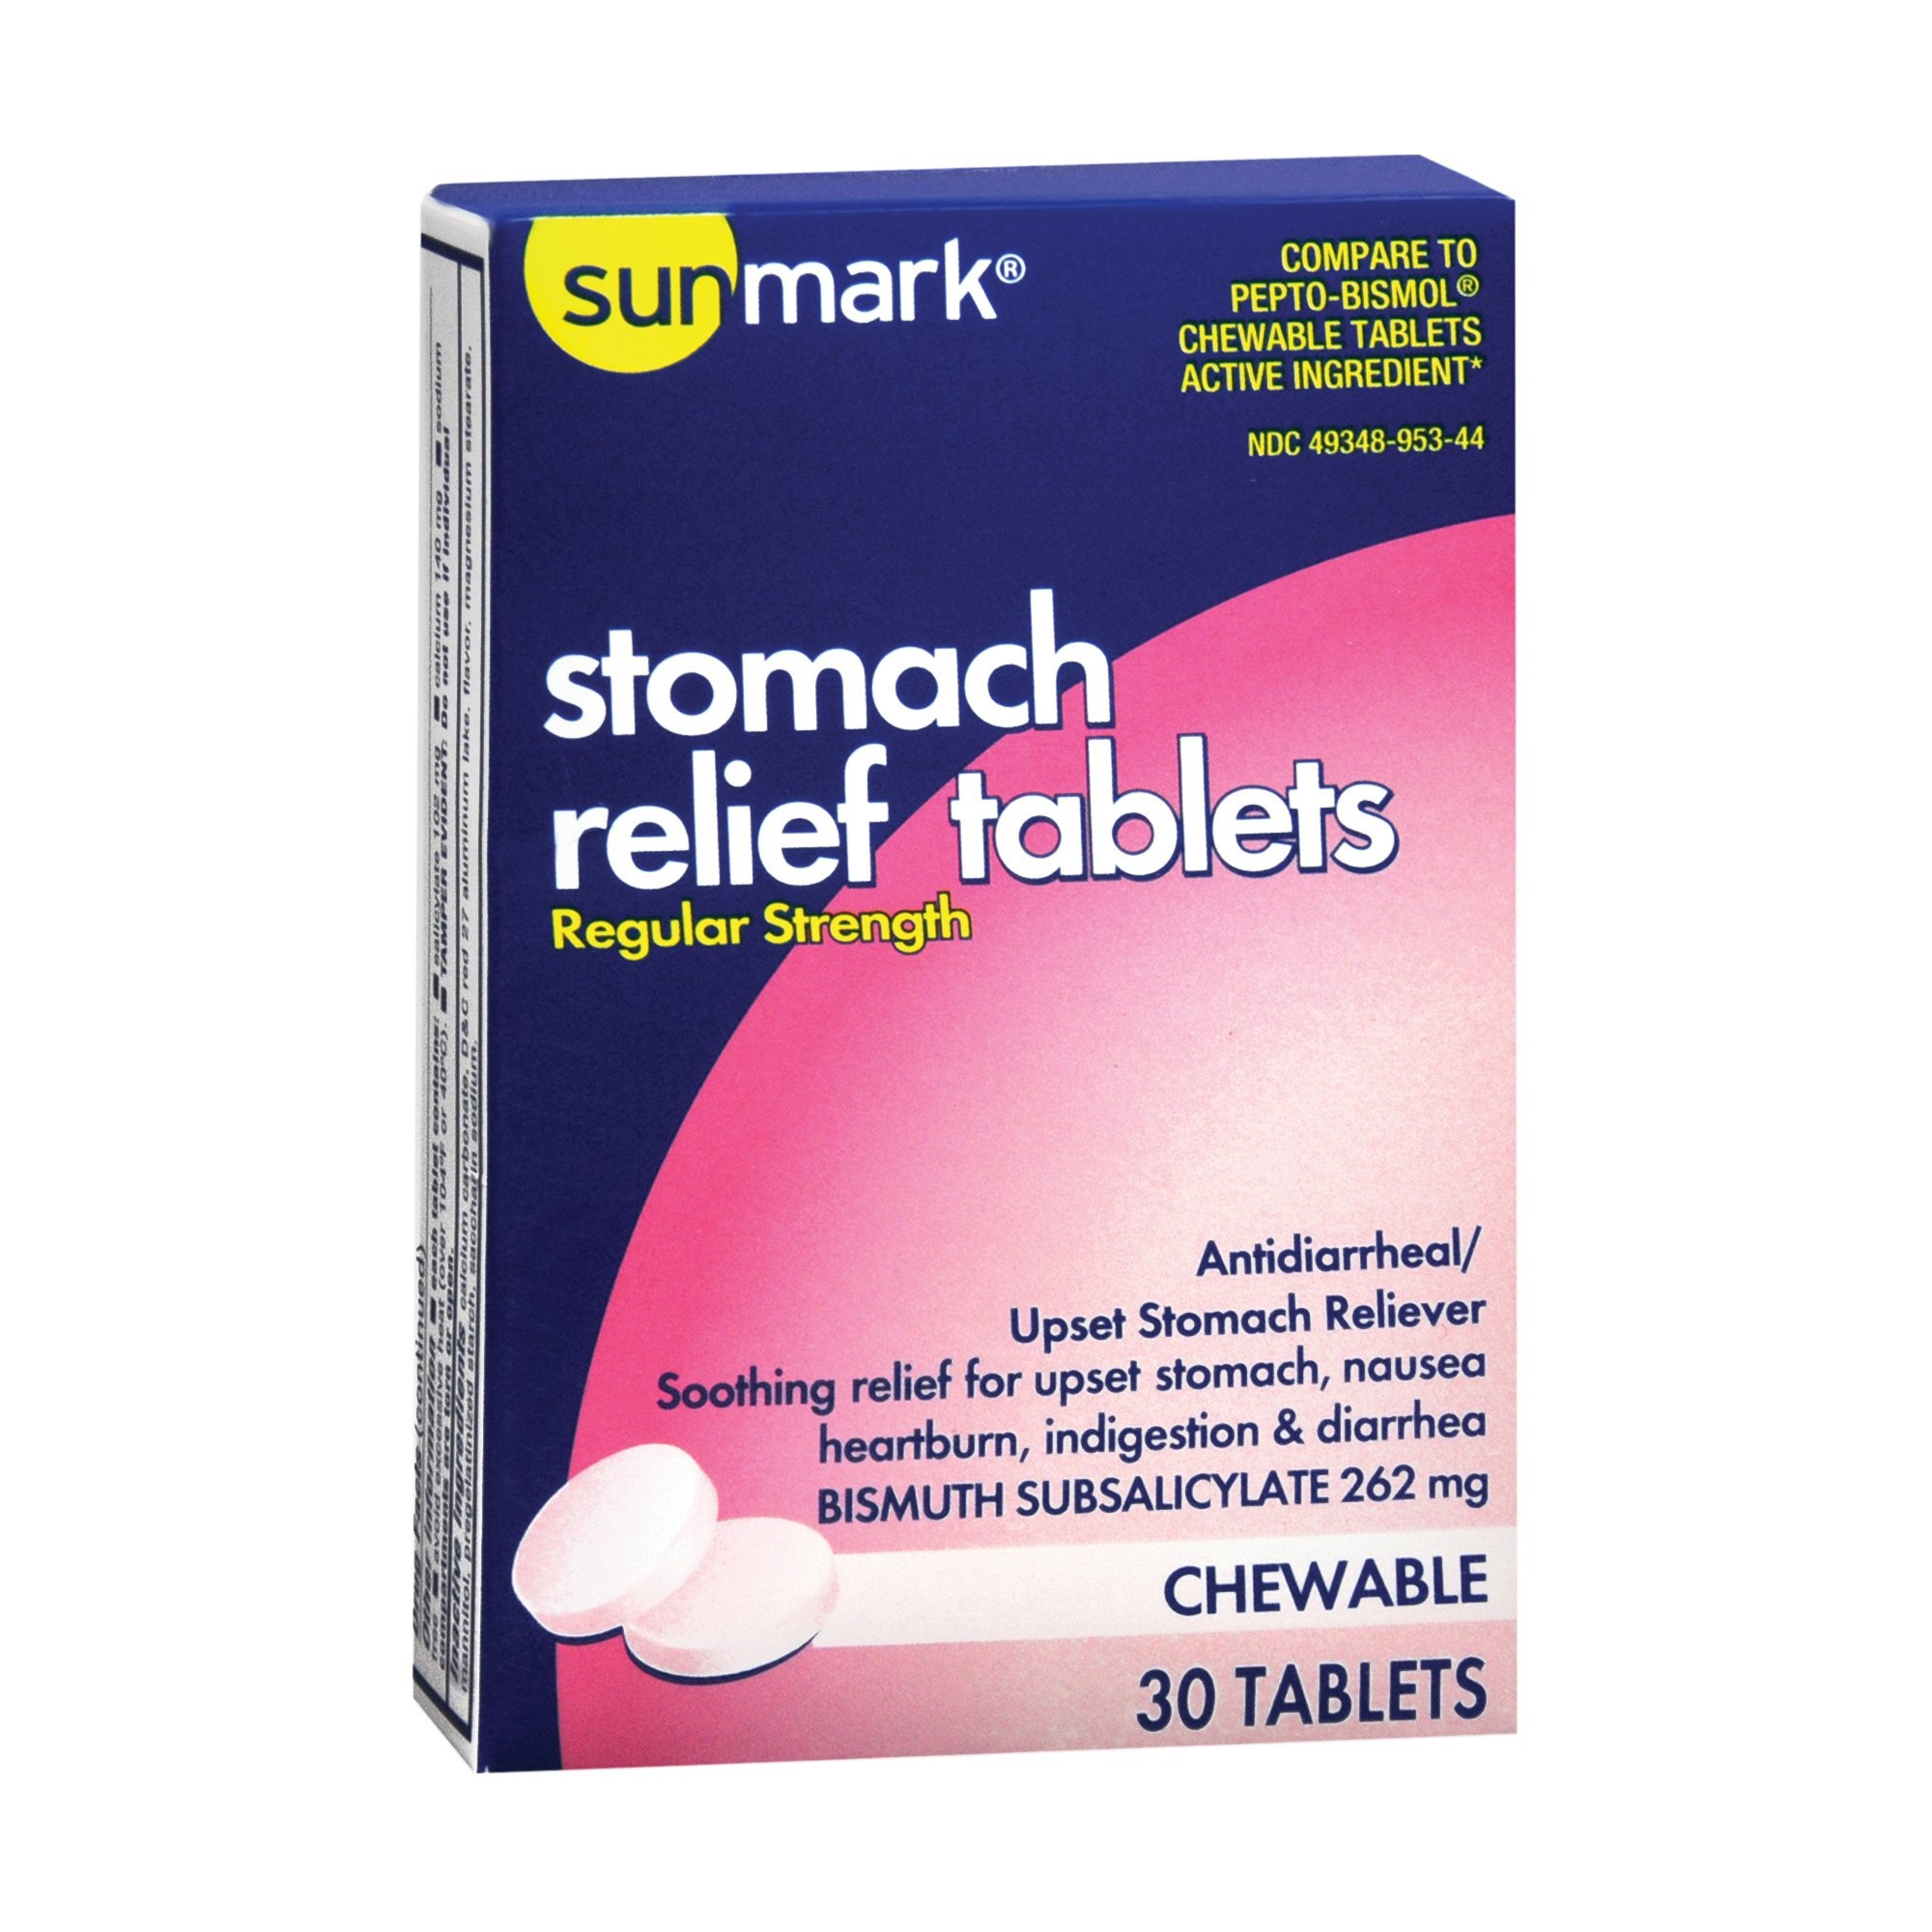 sunmark Regular Strength Stomach Relief Tablets, 262 mg, 30 Tablets, 49348095344, Box of 30